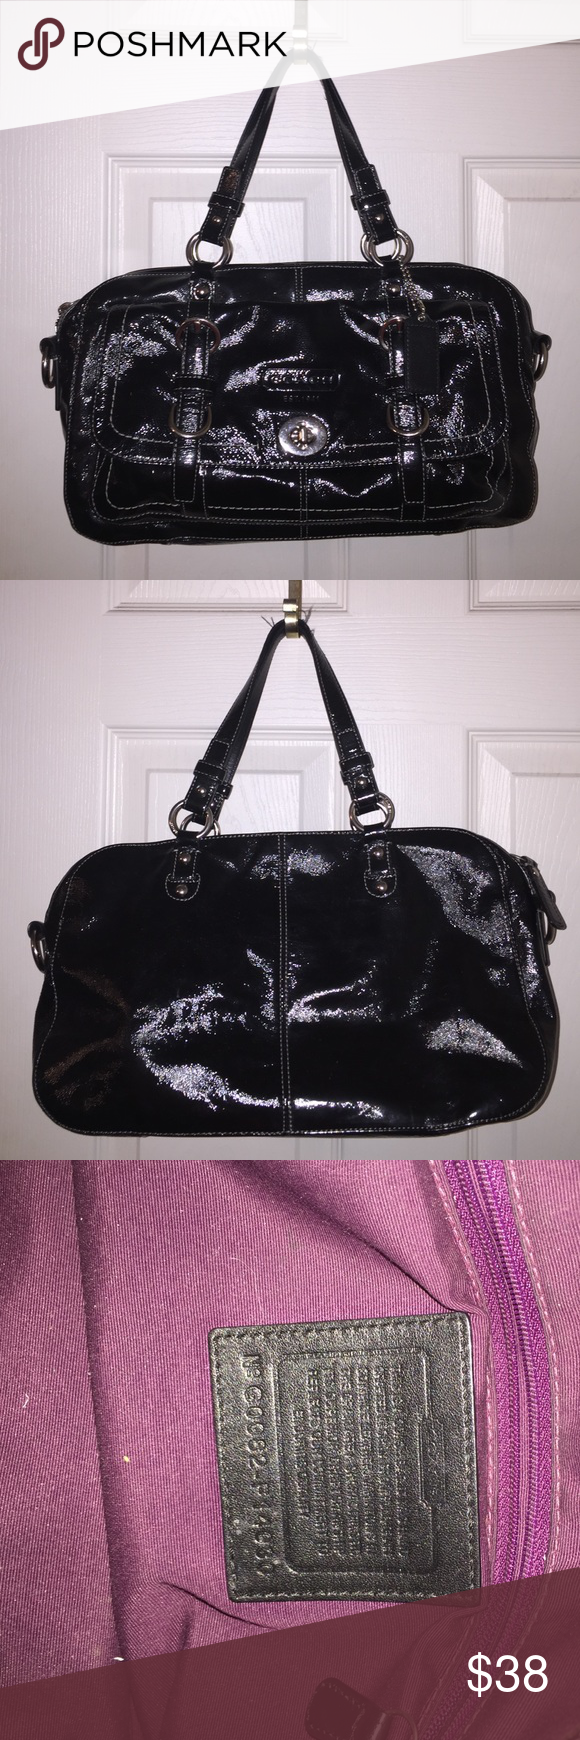 Black coach bag Worn a couple times. In like new condition, but handles are a little worn Coach Bags